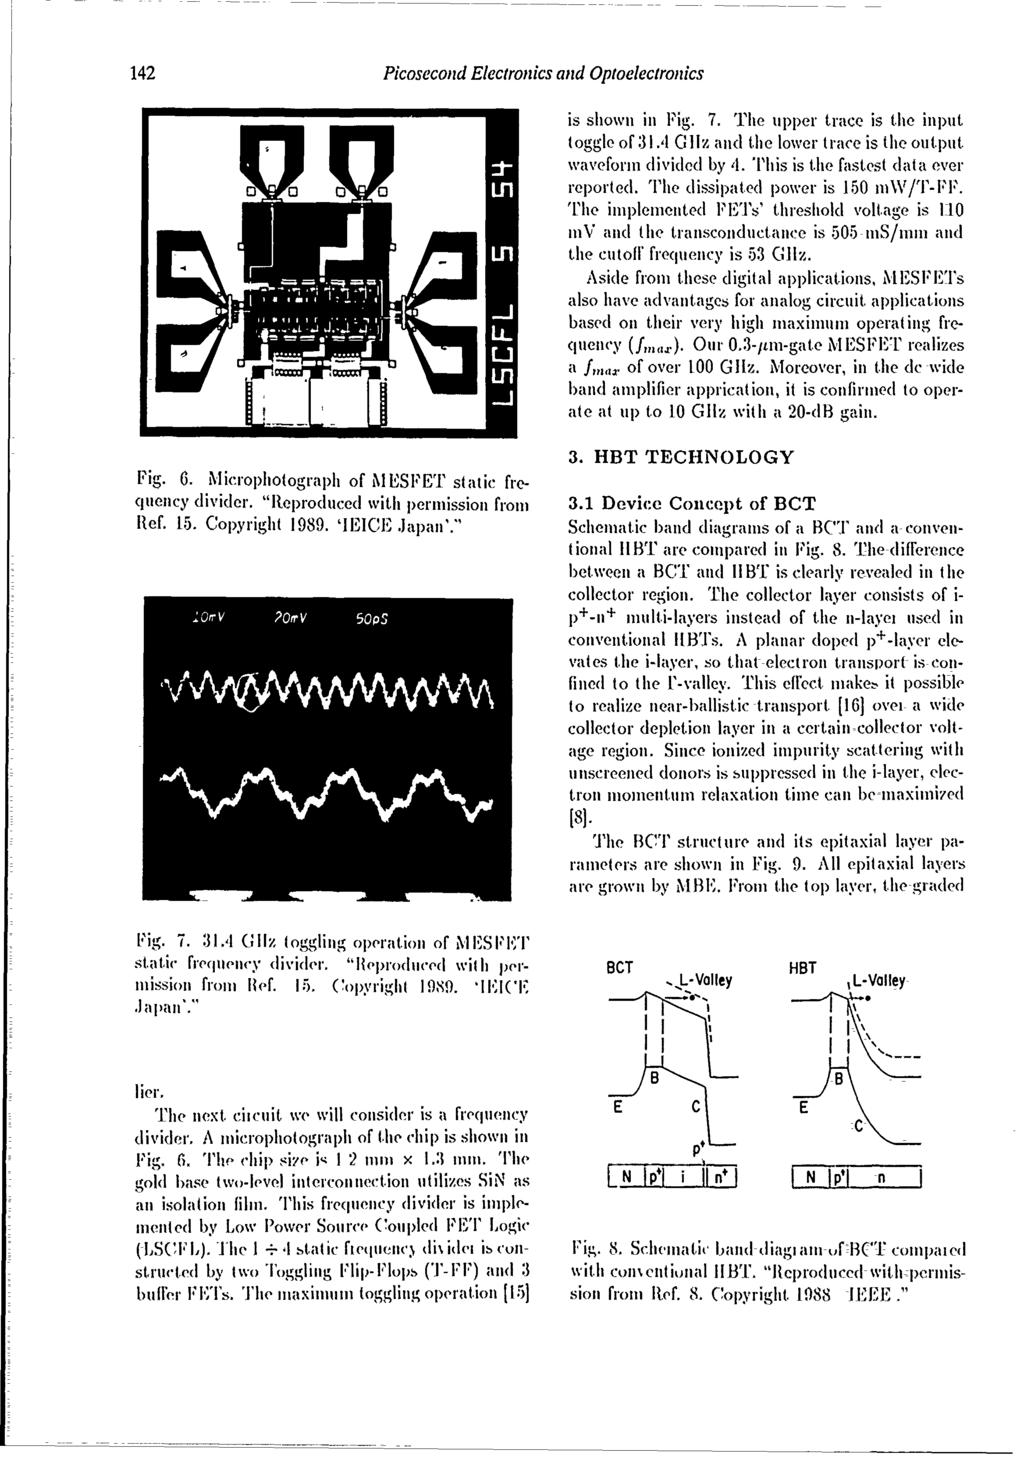 "142 Picosecond Electronics and Optoelecironics o o~ oreported. Fig. 6. imicrophotograph of ii ESPET static frequency divider. ""Reproduced with permission from Ref. 15. Copyright 1989. 'IEICE, Japan'."